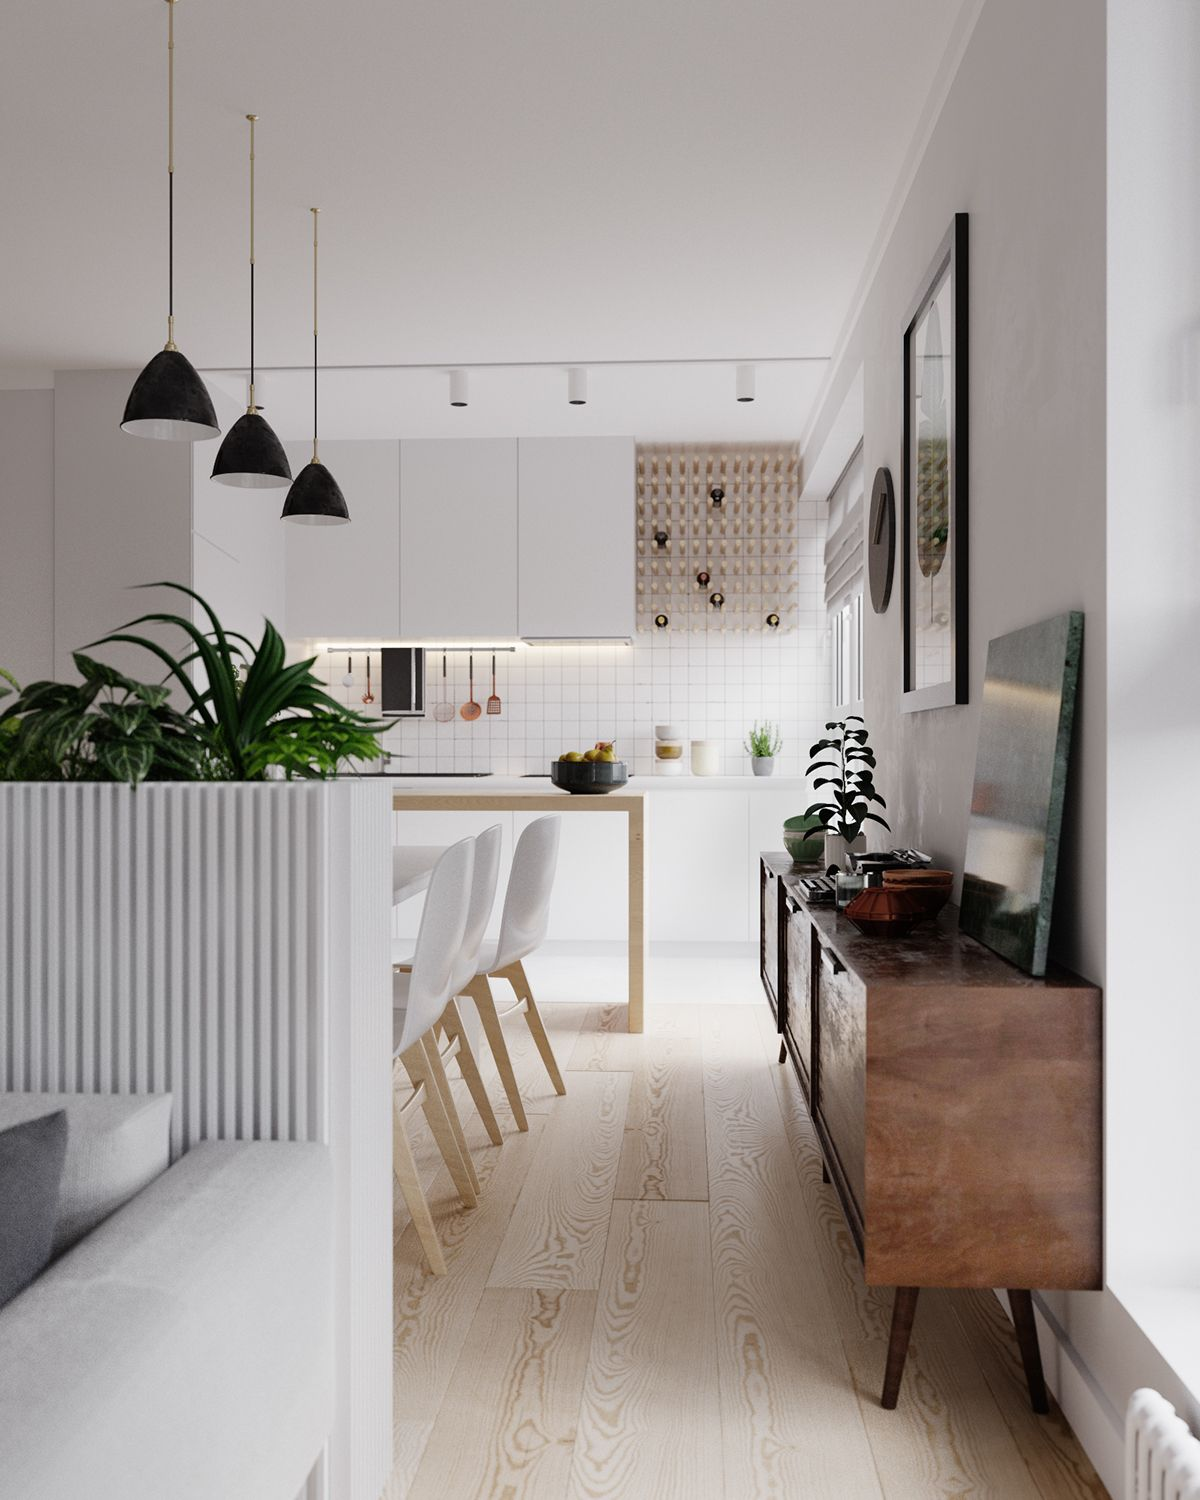 Interior Design Of Apartment In Minsk At The Joint Of Scandinavian Style And Restrained Minimalis Apartment Interior Apartment Design Apartment Interior Design